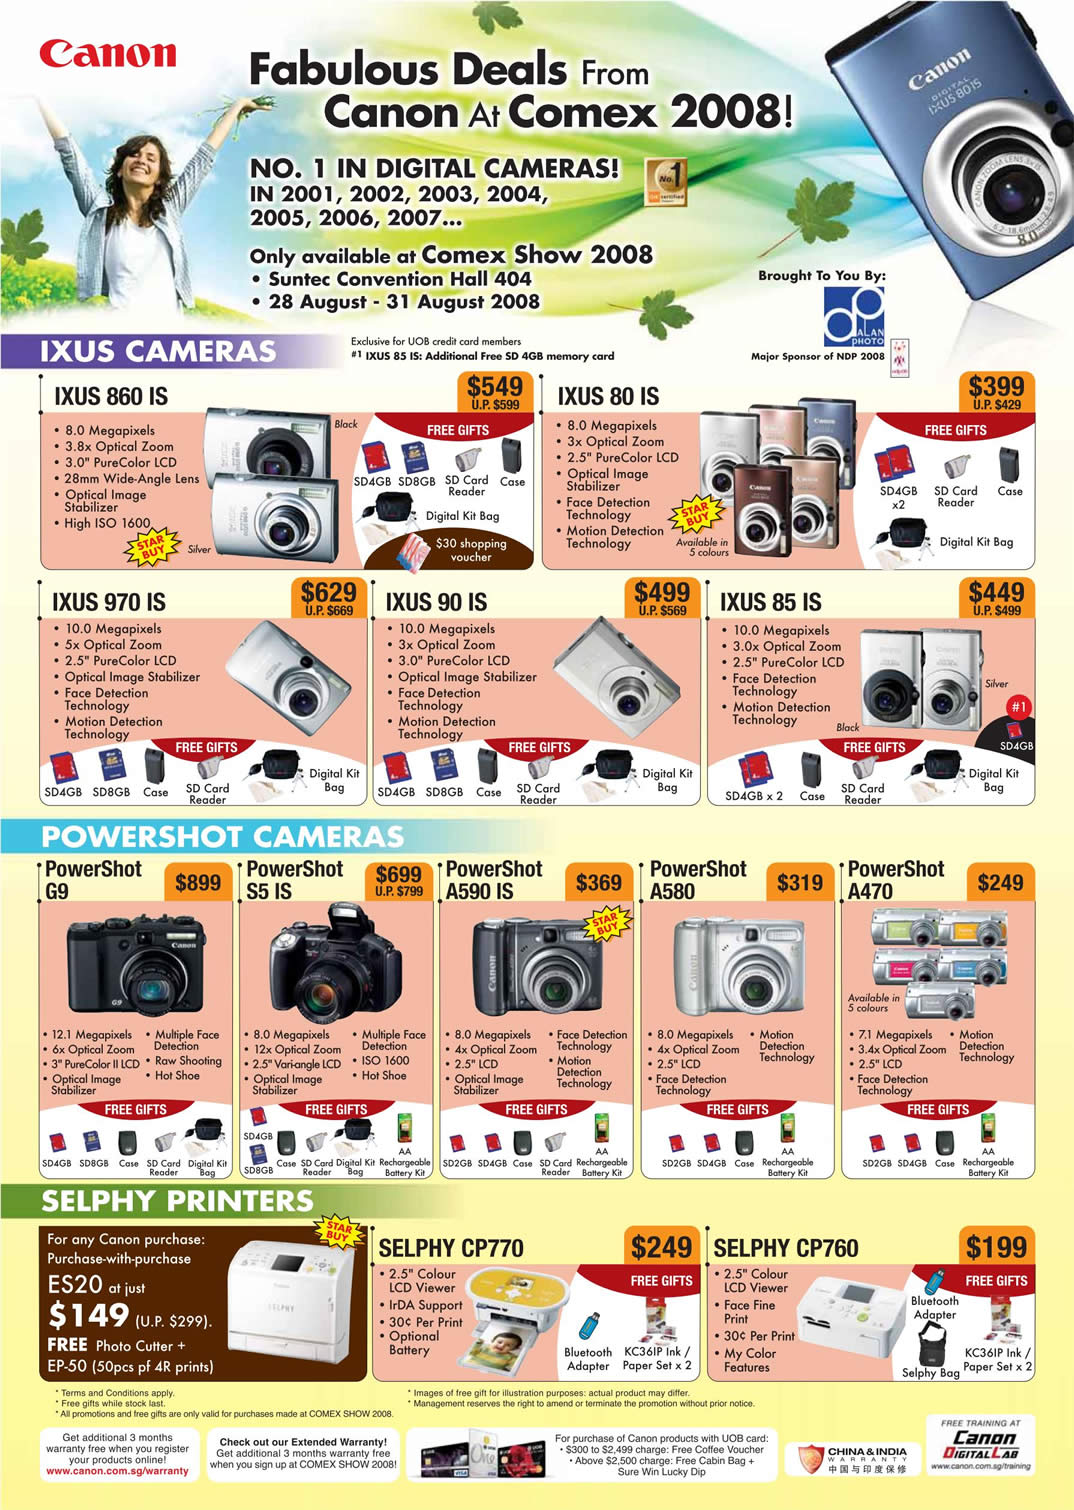 Comex 2008 price list image brochure of Canon Ixus-ps Camera.pdf1